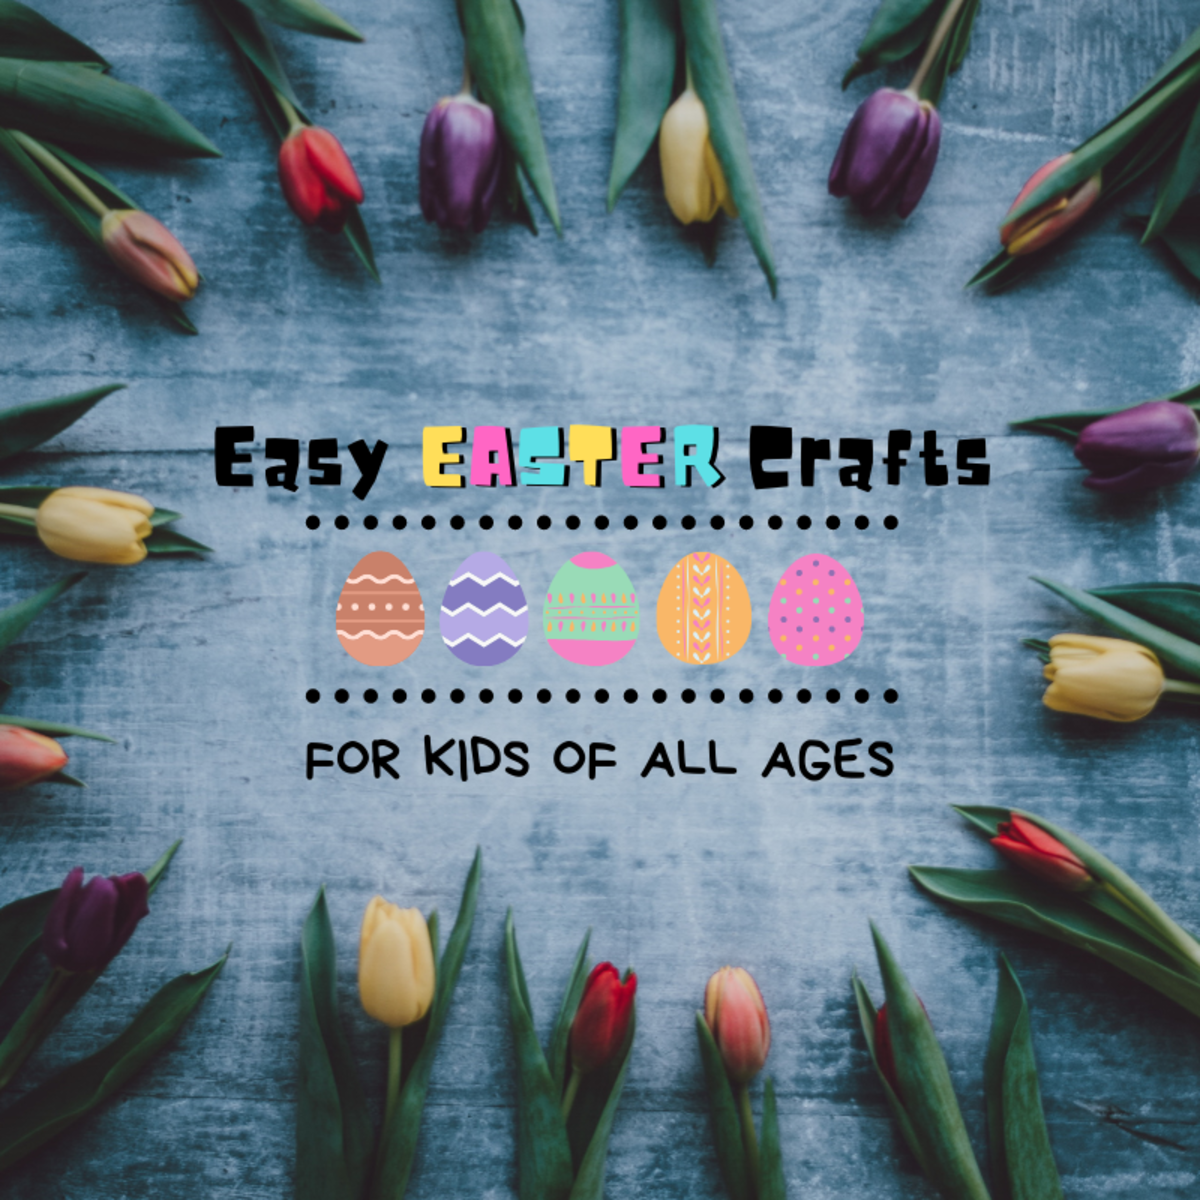 6 Fun and Easy Easter Crafts for Kids of All Ages